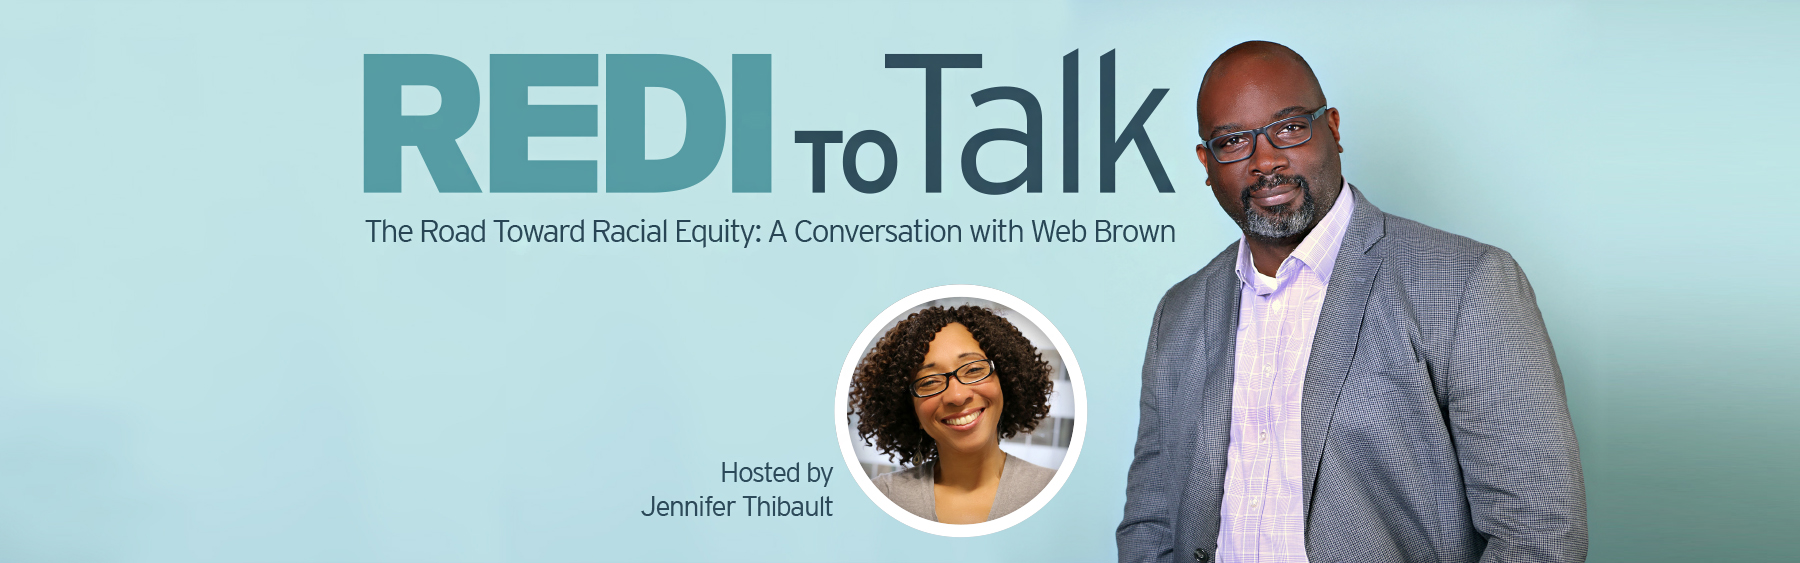 REDI to Talk  |  The Road Toward Racial Equity